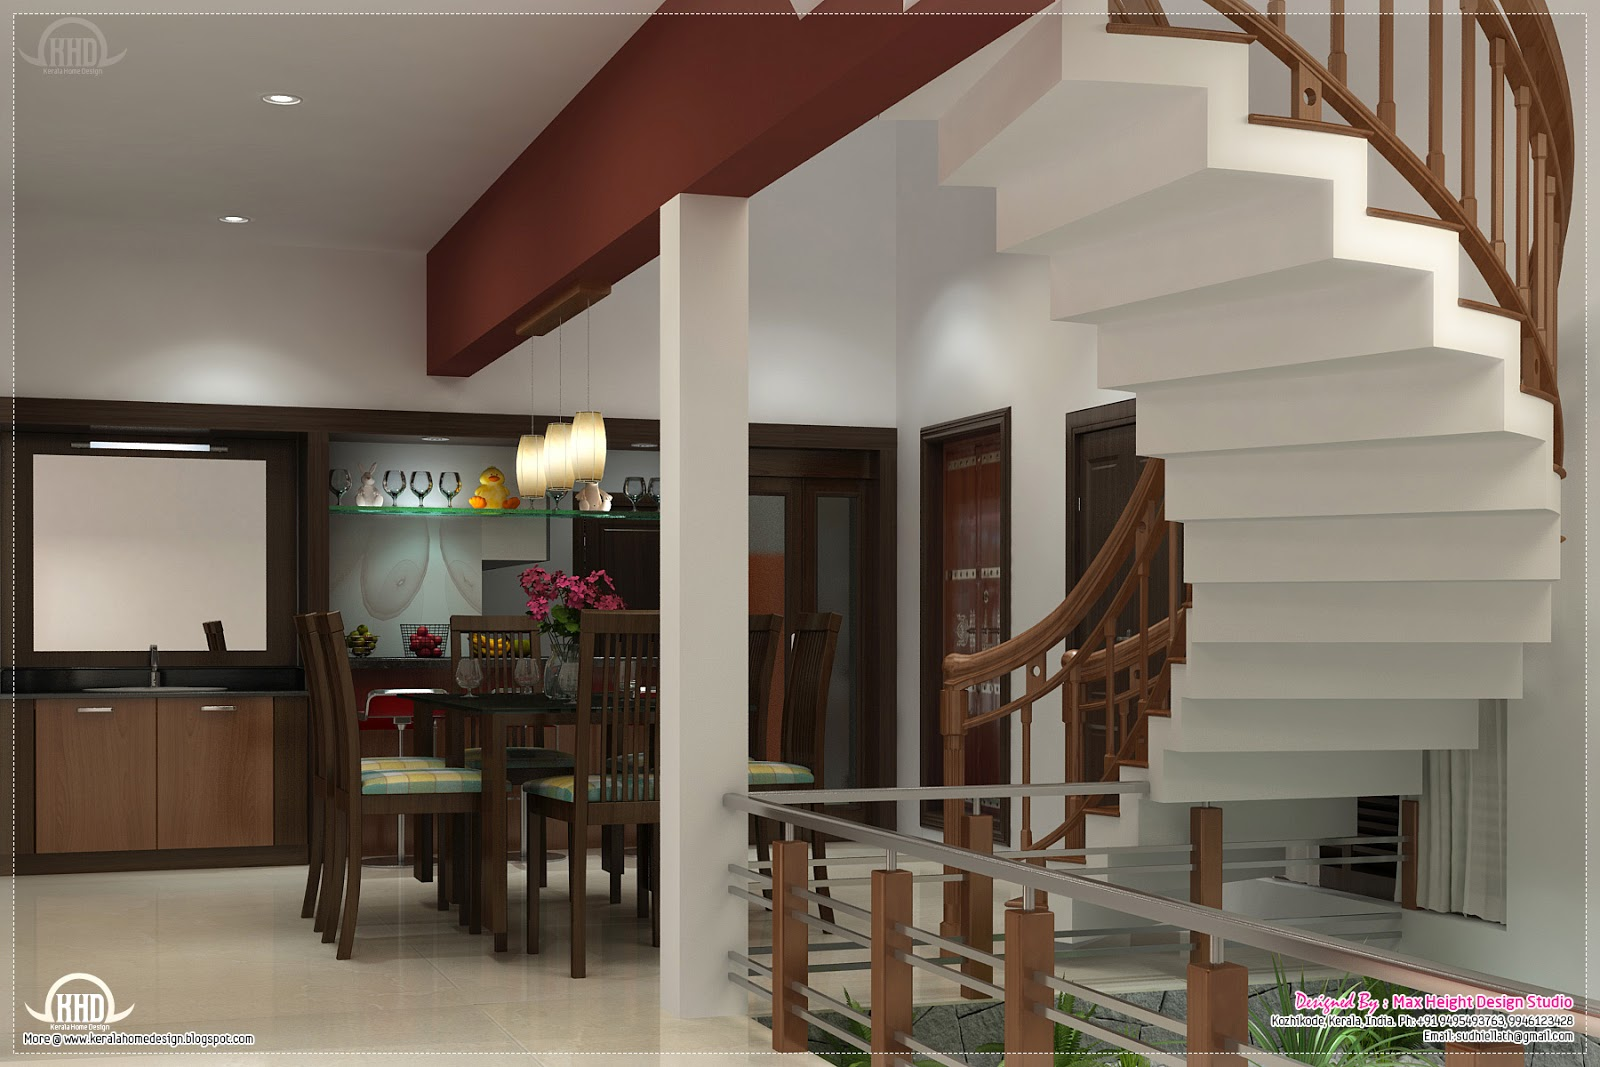 Home interior design ideas kerala home design and floor for Different interior designs of houses